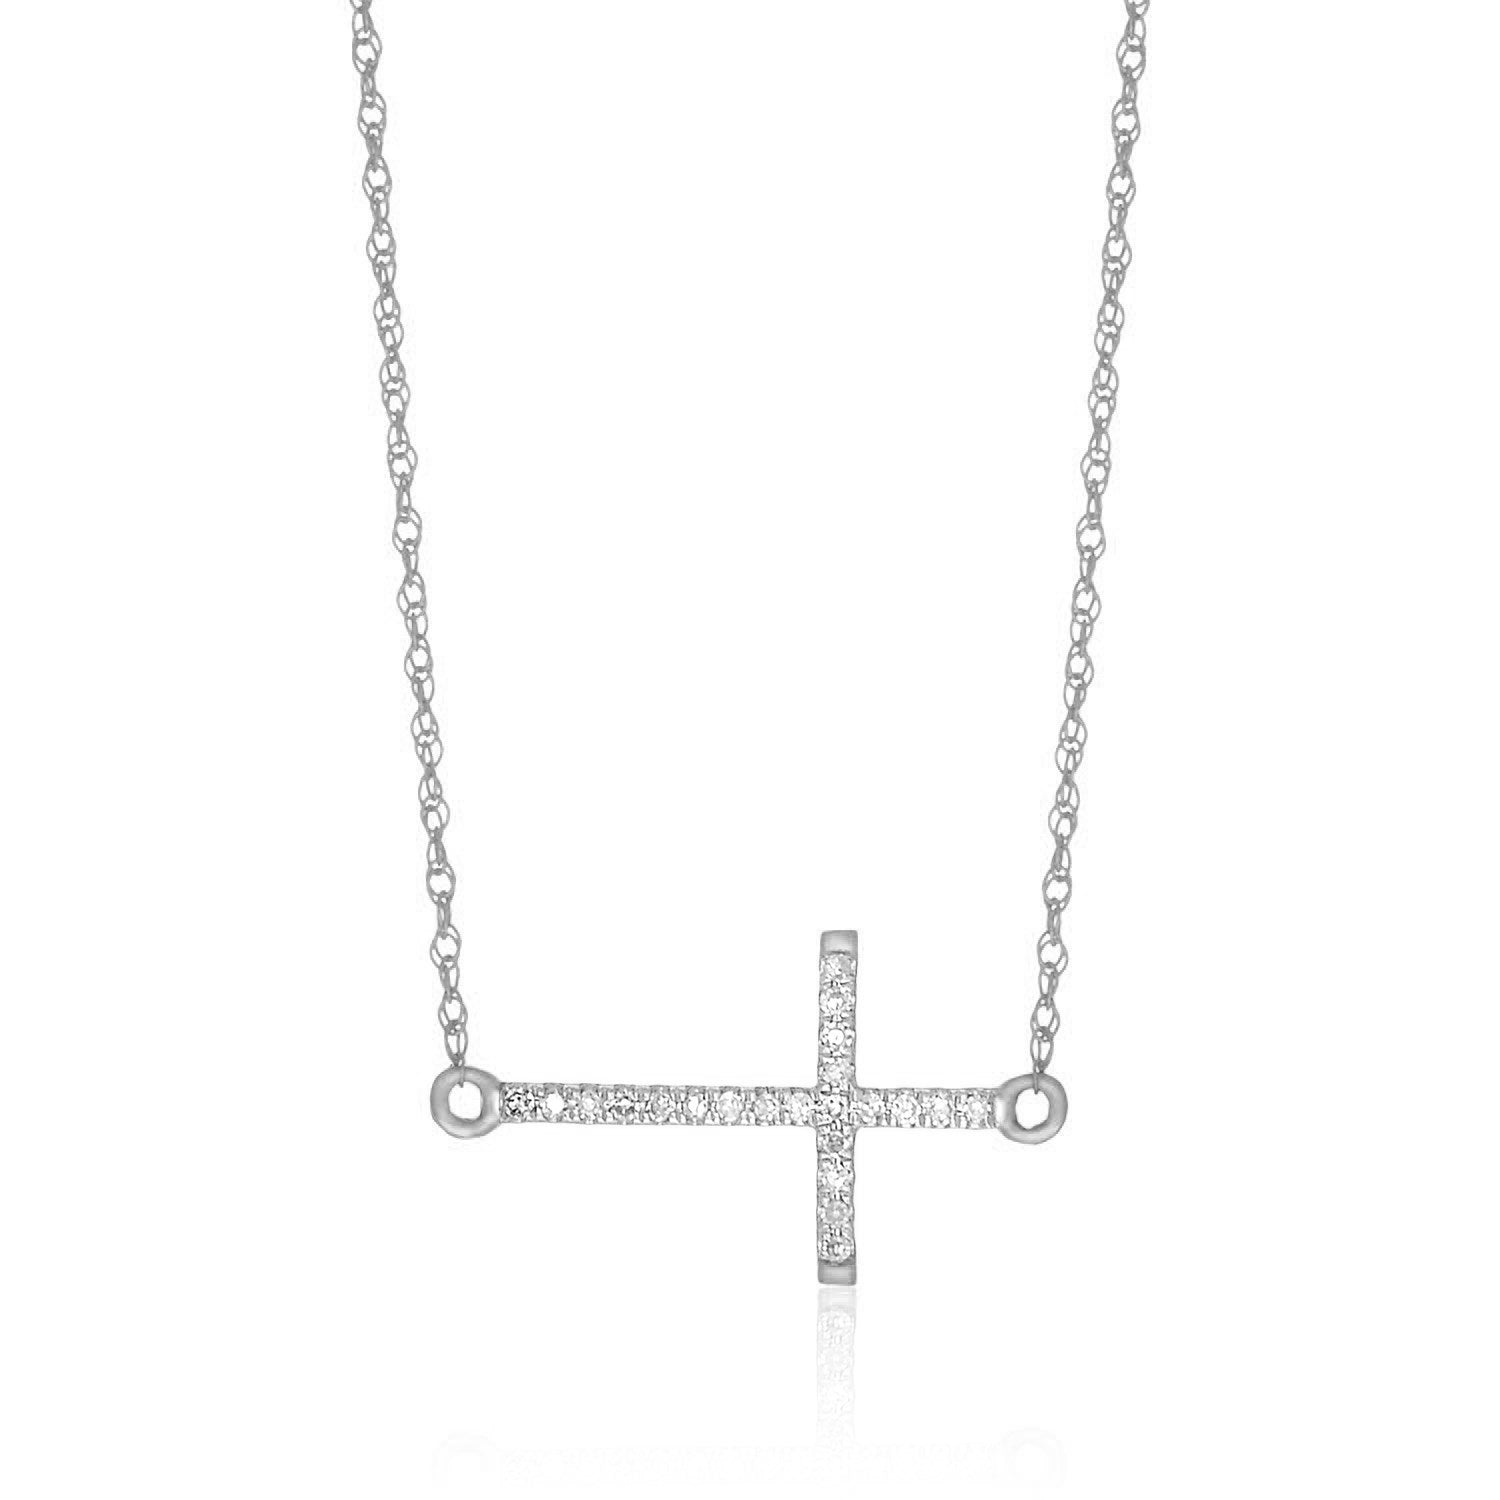 14K White Gold Diamond Embellished Cross Chain Necklace